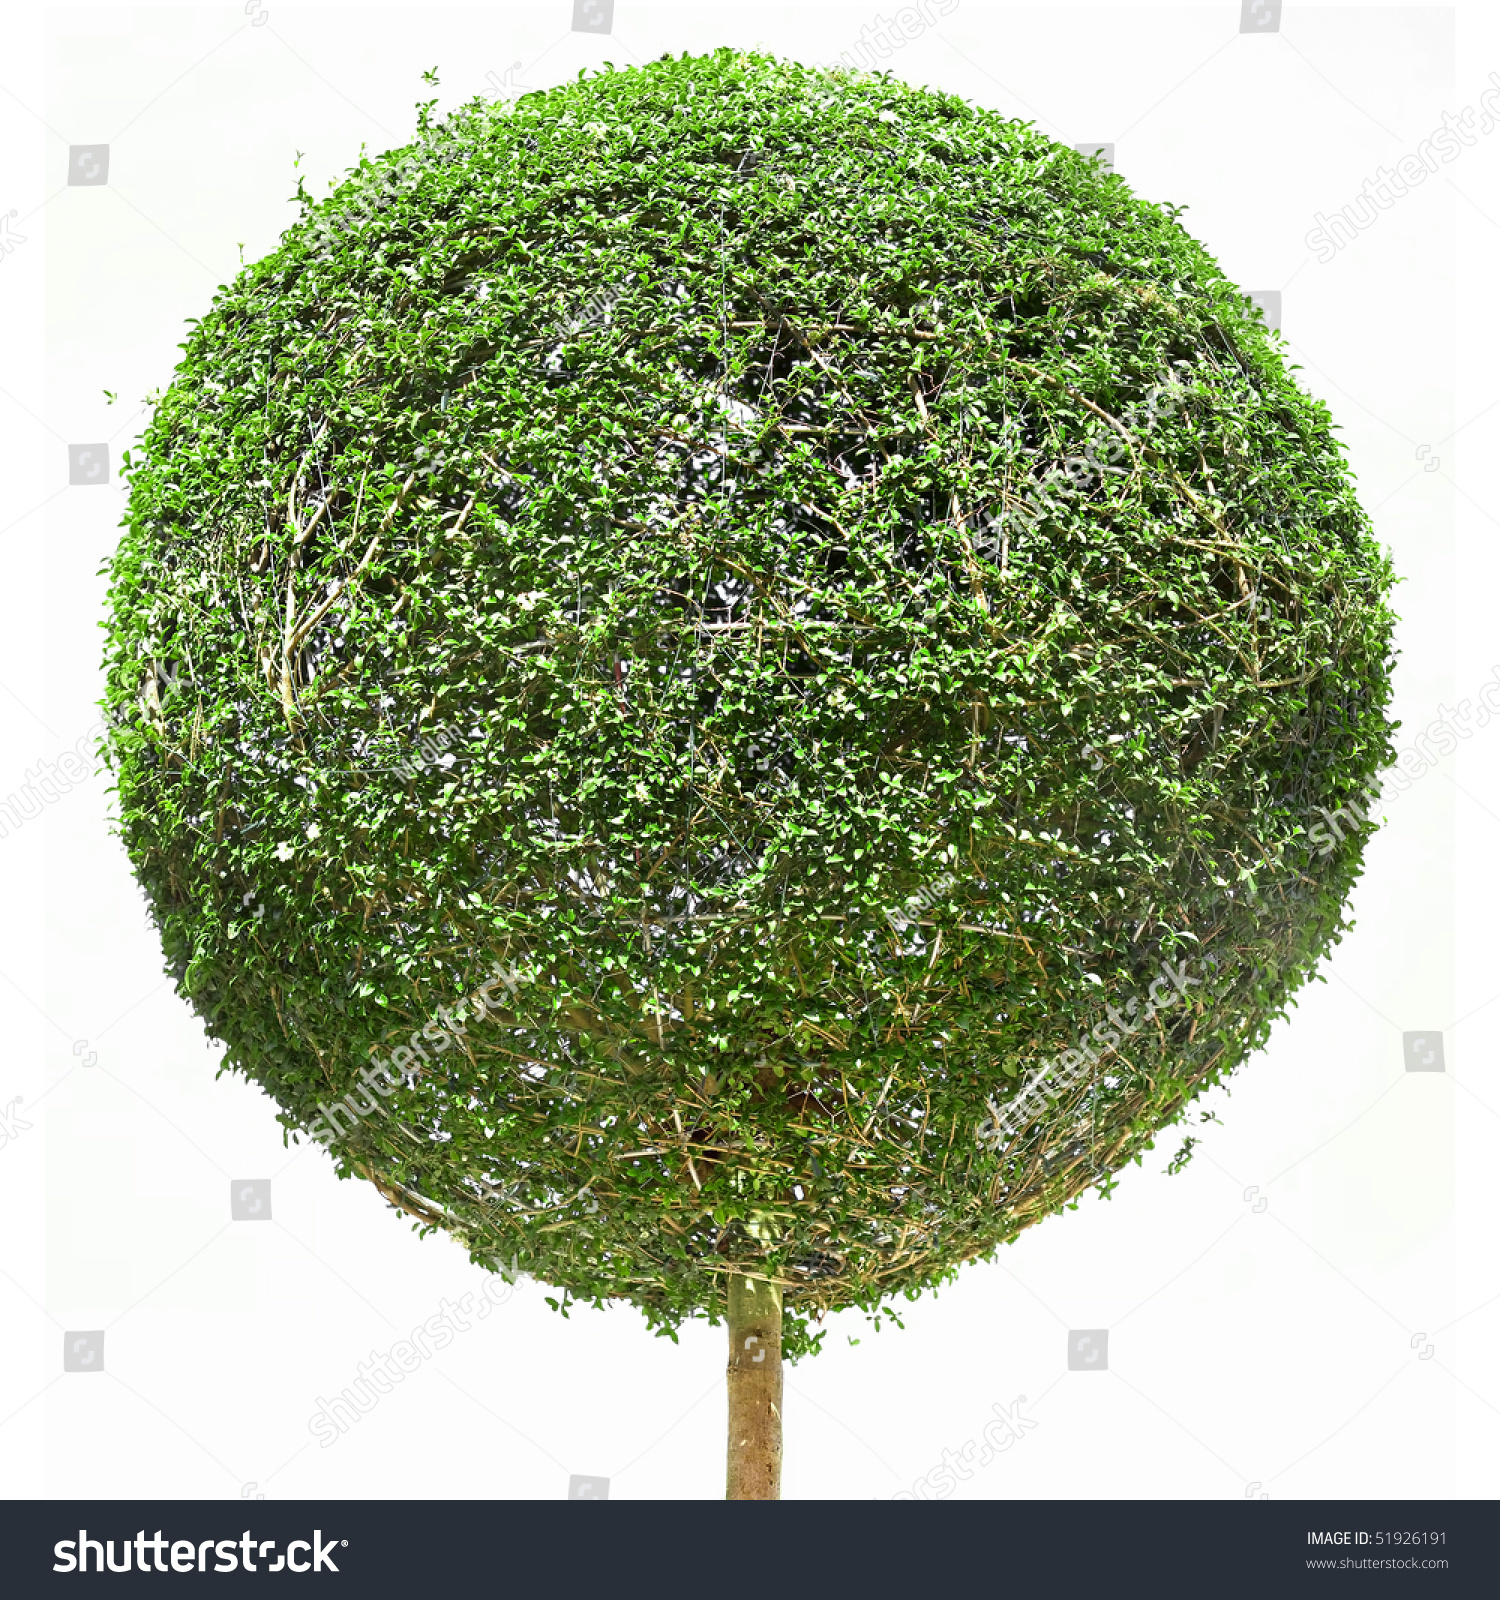 Ornamental evergreen trees - Ornamental Evergreen Tree In The Form Of A Globe Isolated On White Background